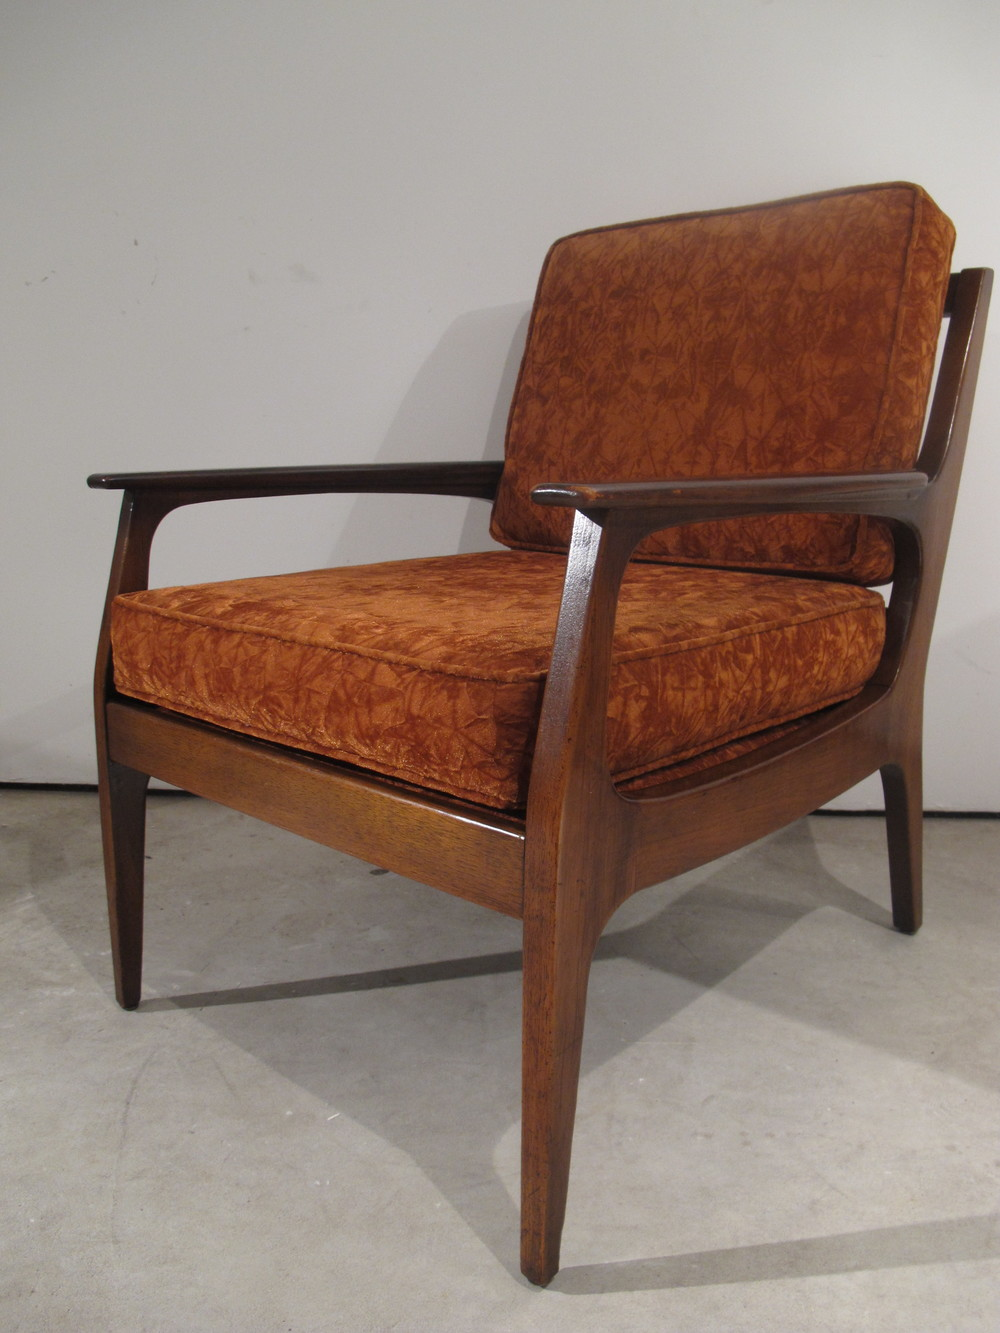 DANISH MODERN STYLE LOUNGE CHAIR